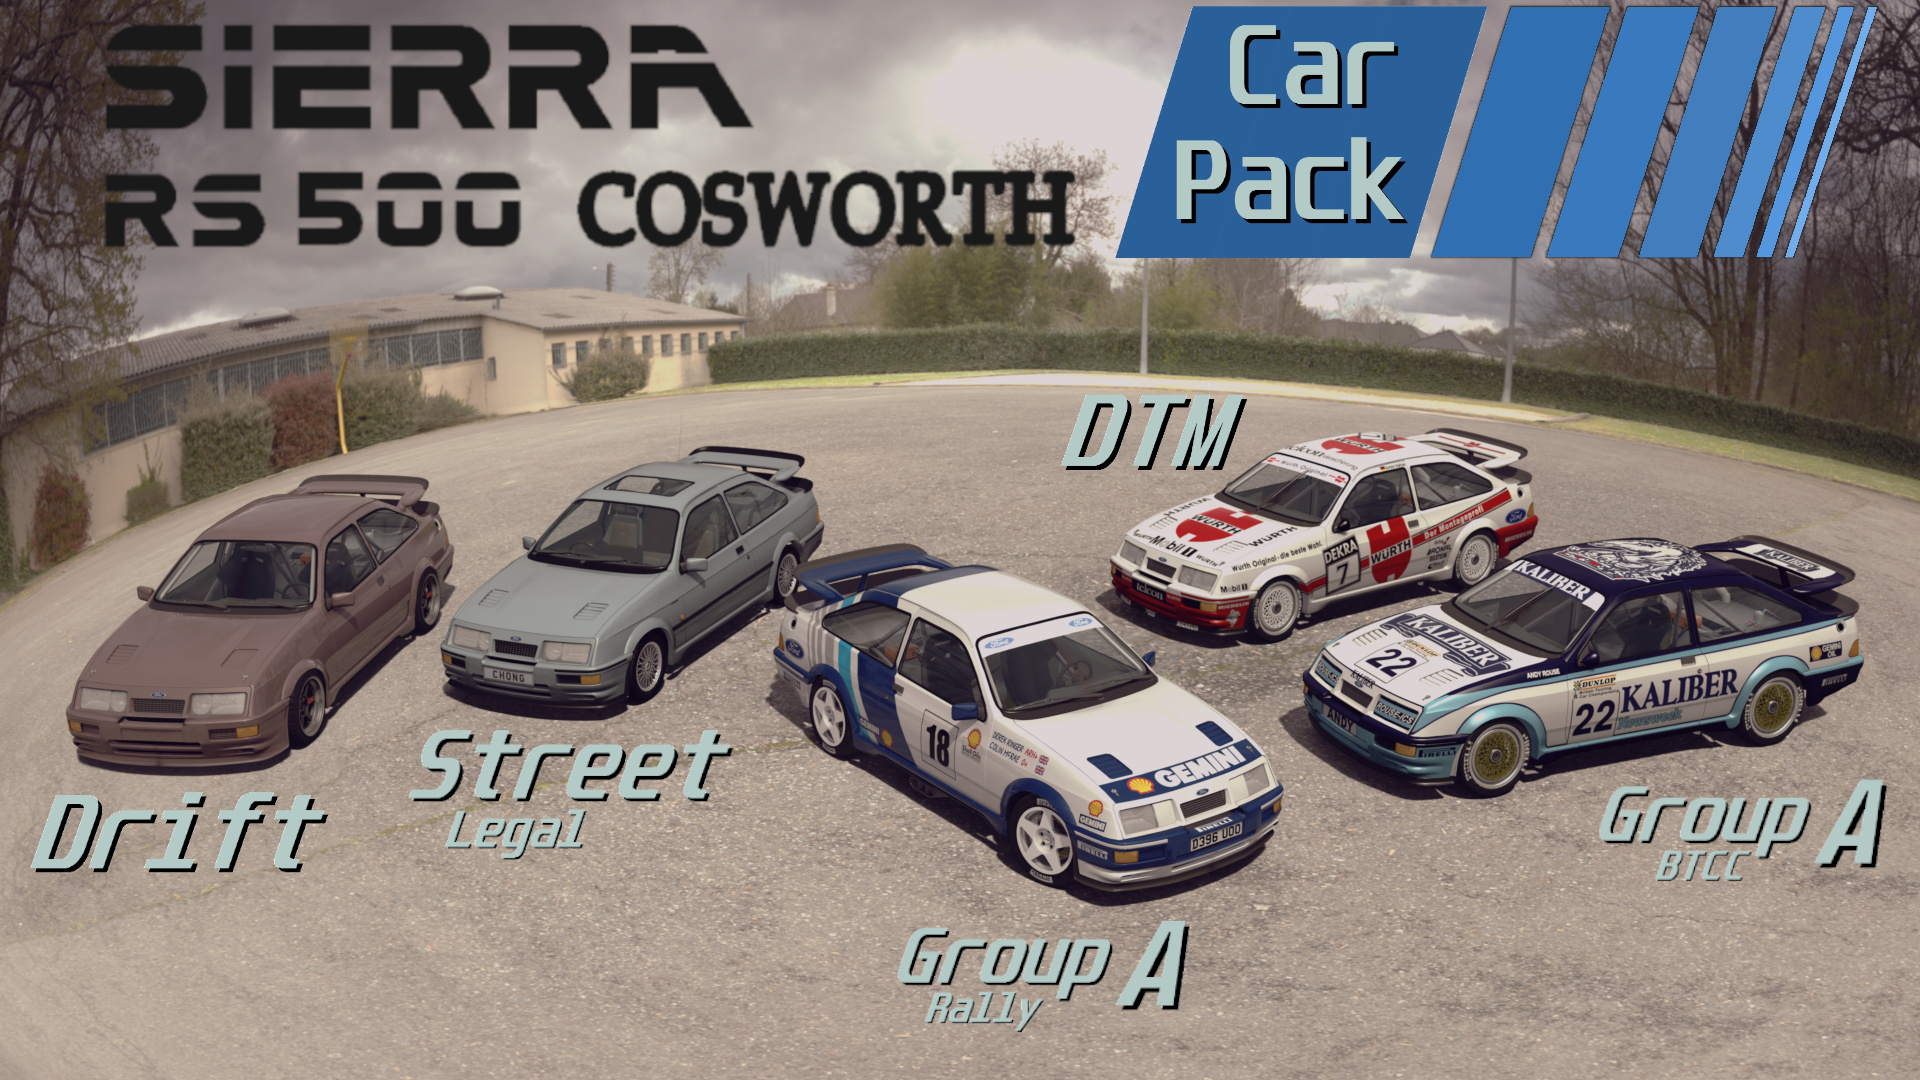 RS500 pack picture.jpg